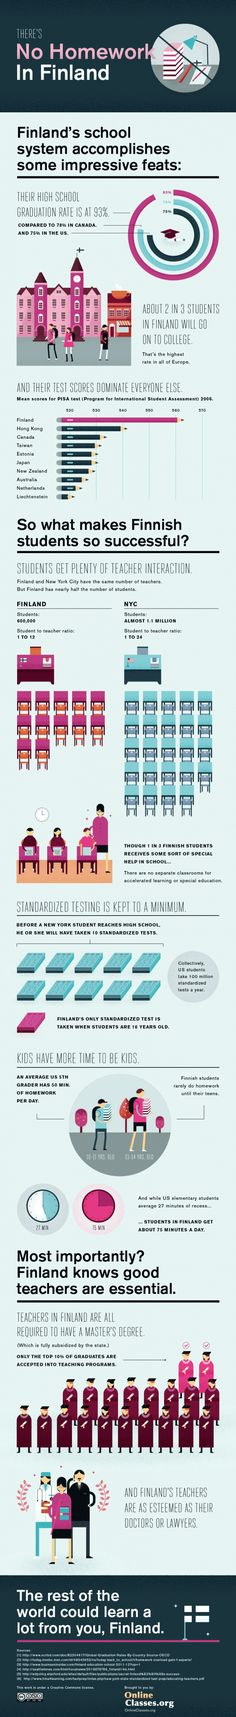 What You Should Know About Education In Finland - Edudemic